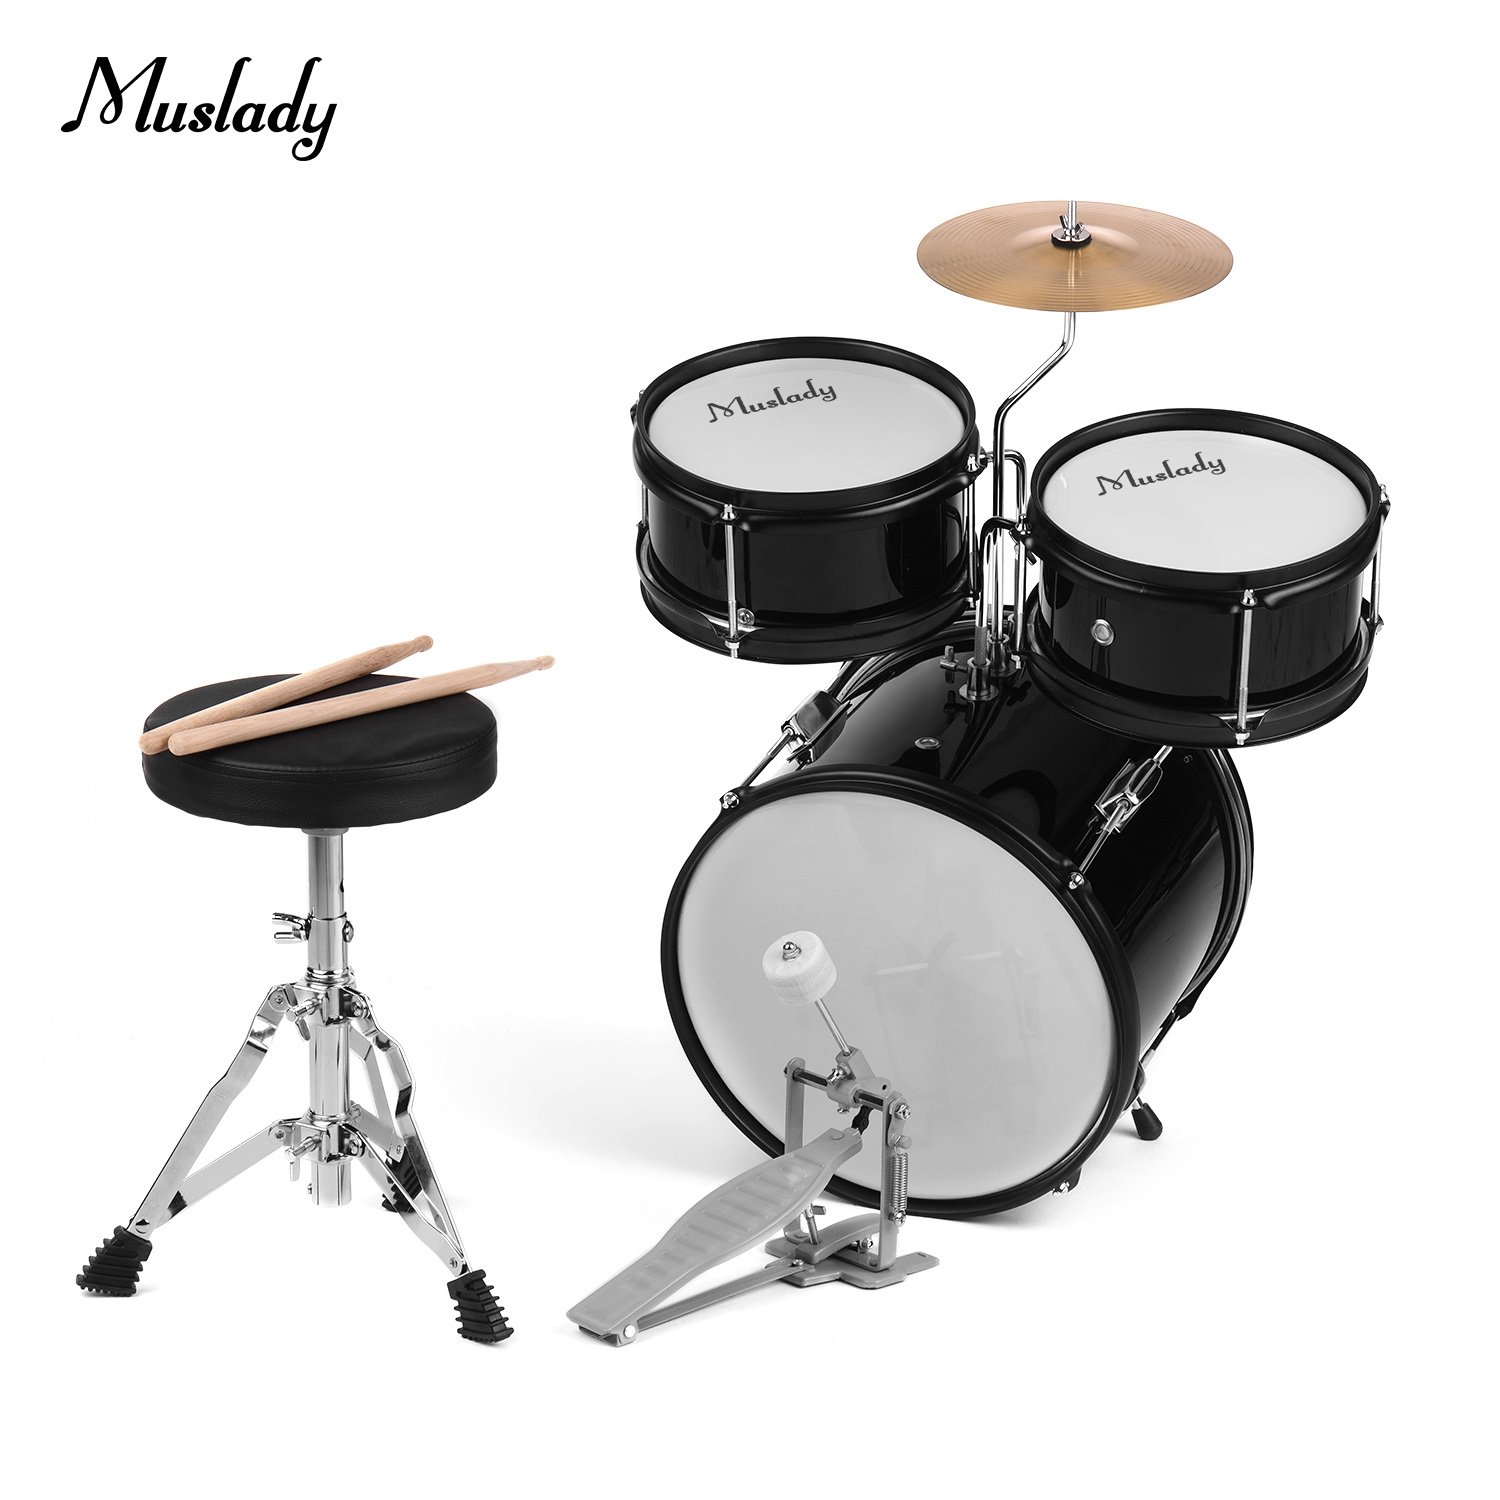 muslady kids junior beginners 3 piece drum set drums kit percussion musical instrument with cymbal drumsticks adjustable stool